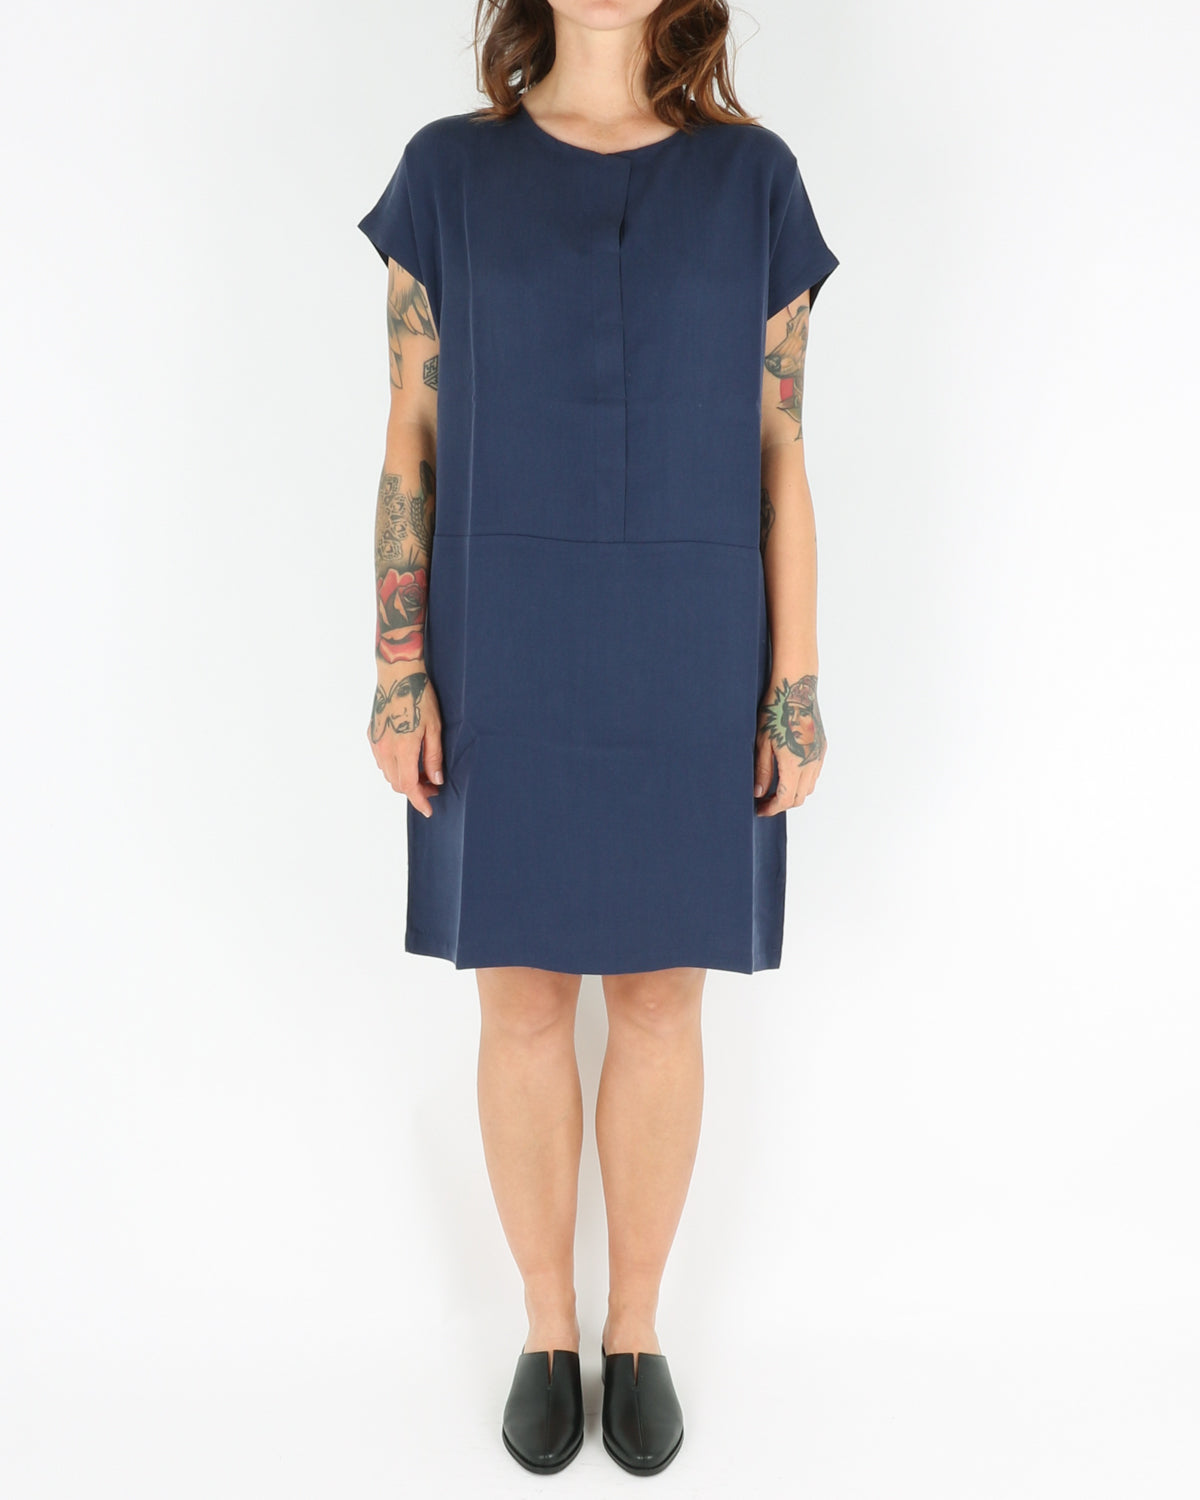 basic apparel_ines dress_navy_1_4